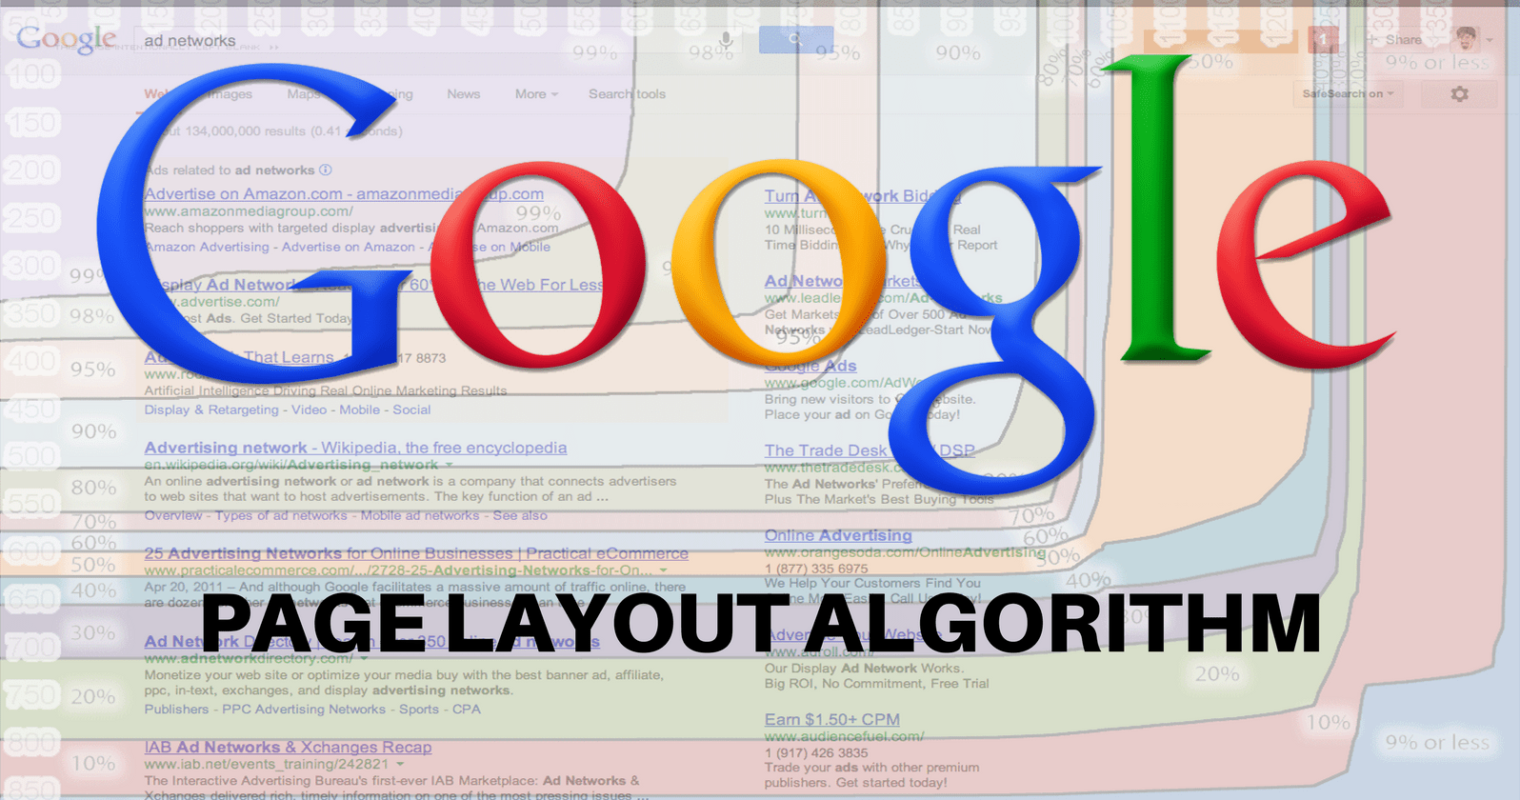 Google Page Layout Algorithm: Everything You Need to Know